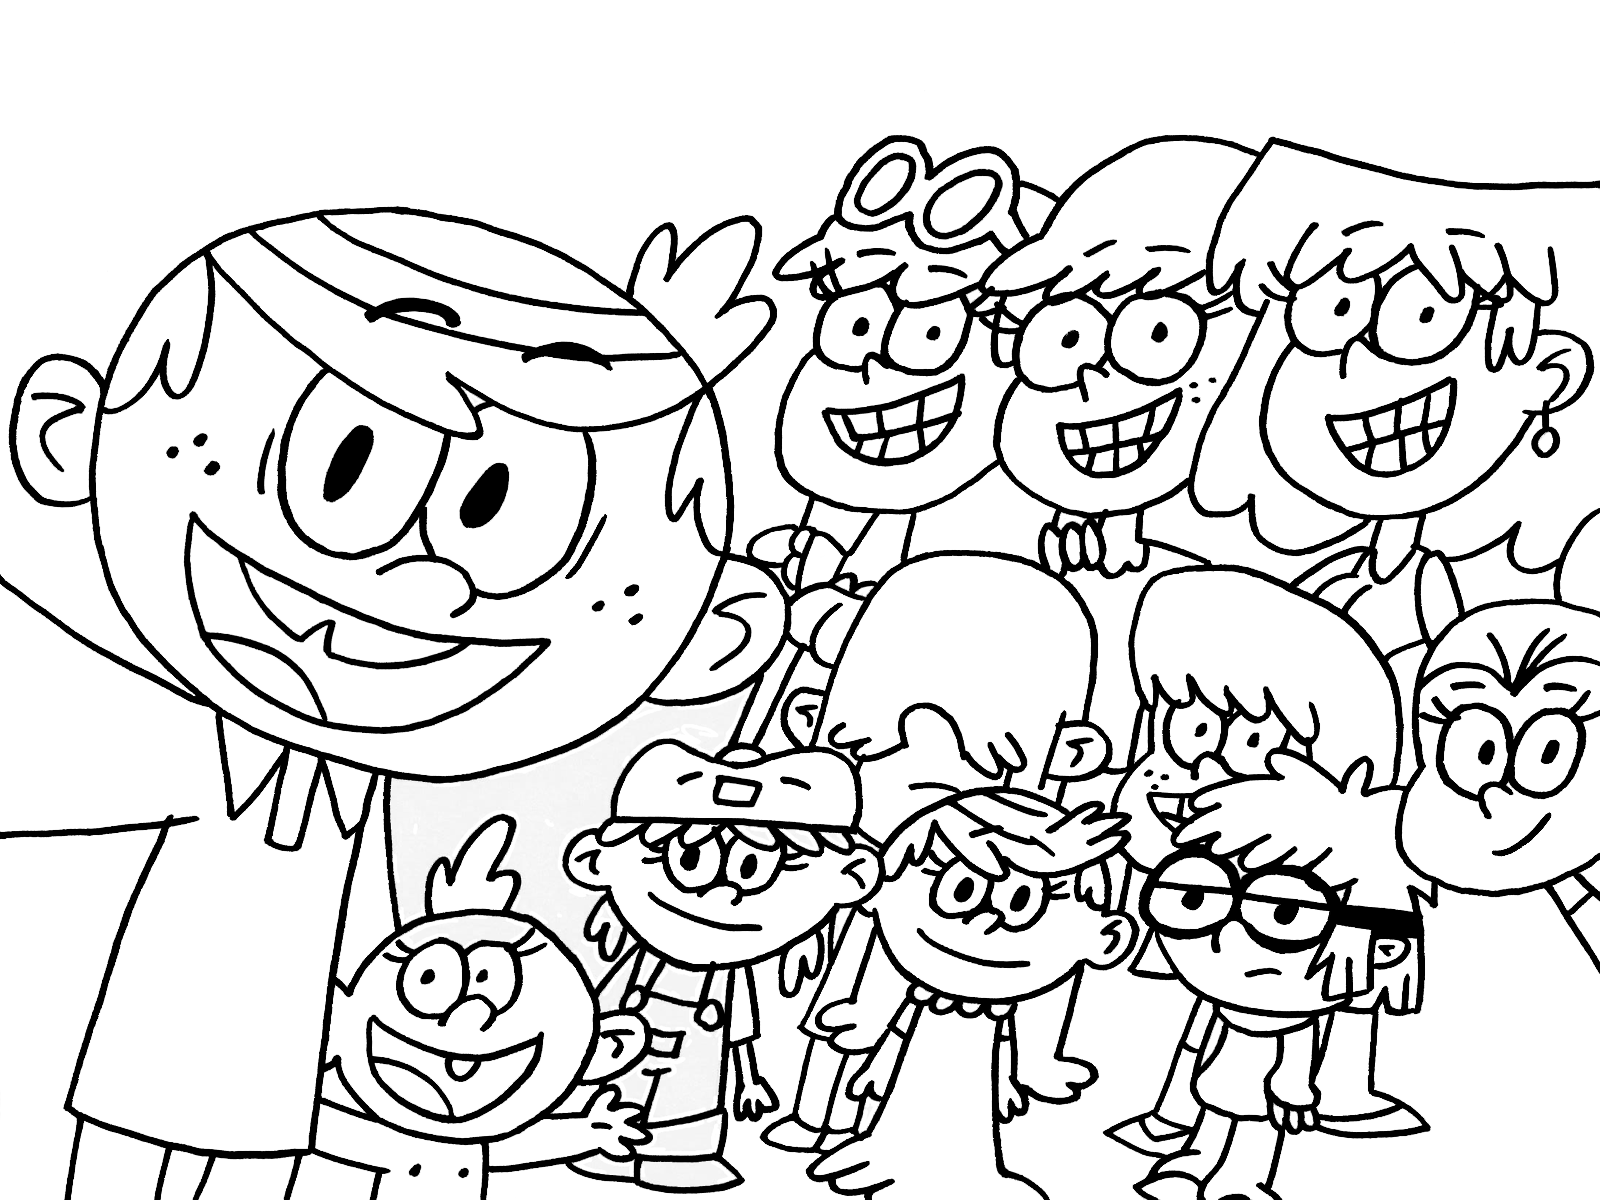 1600x1200 The Loud House Coloring Pages To Download And Print For Free